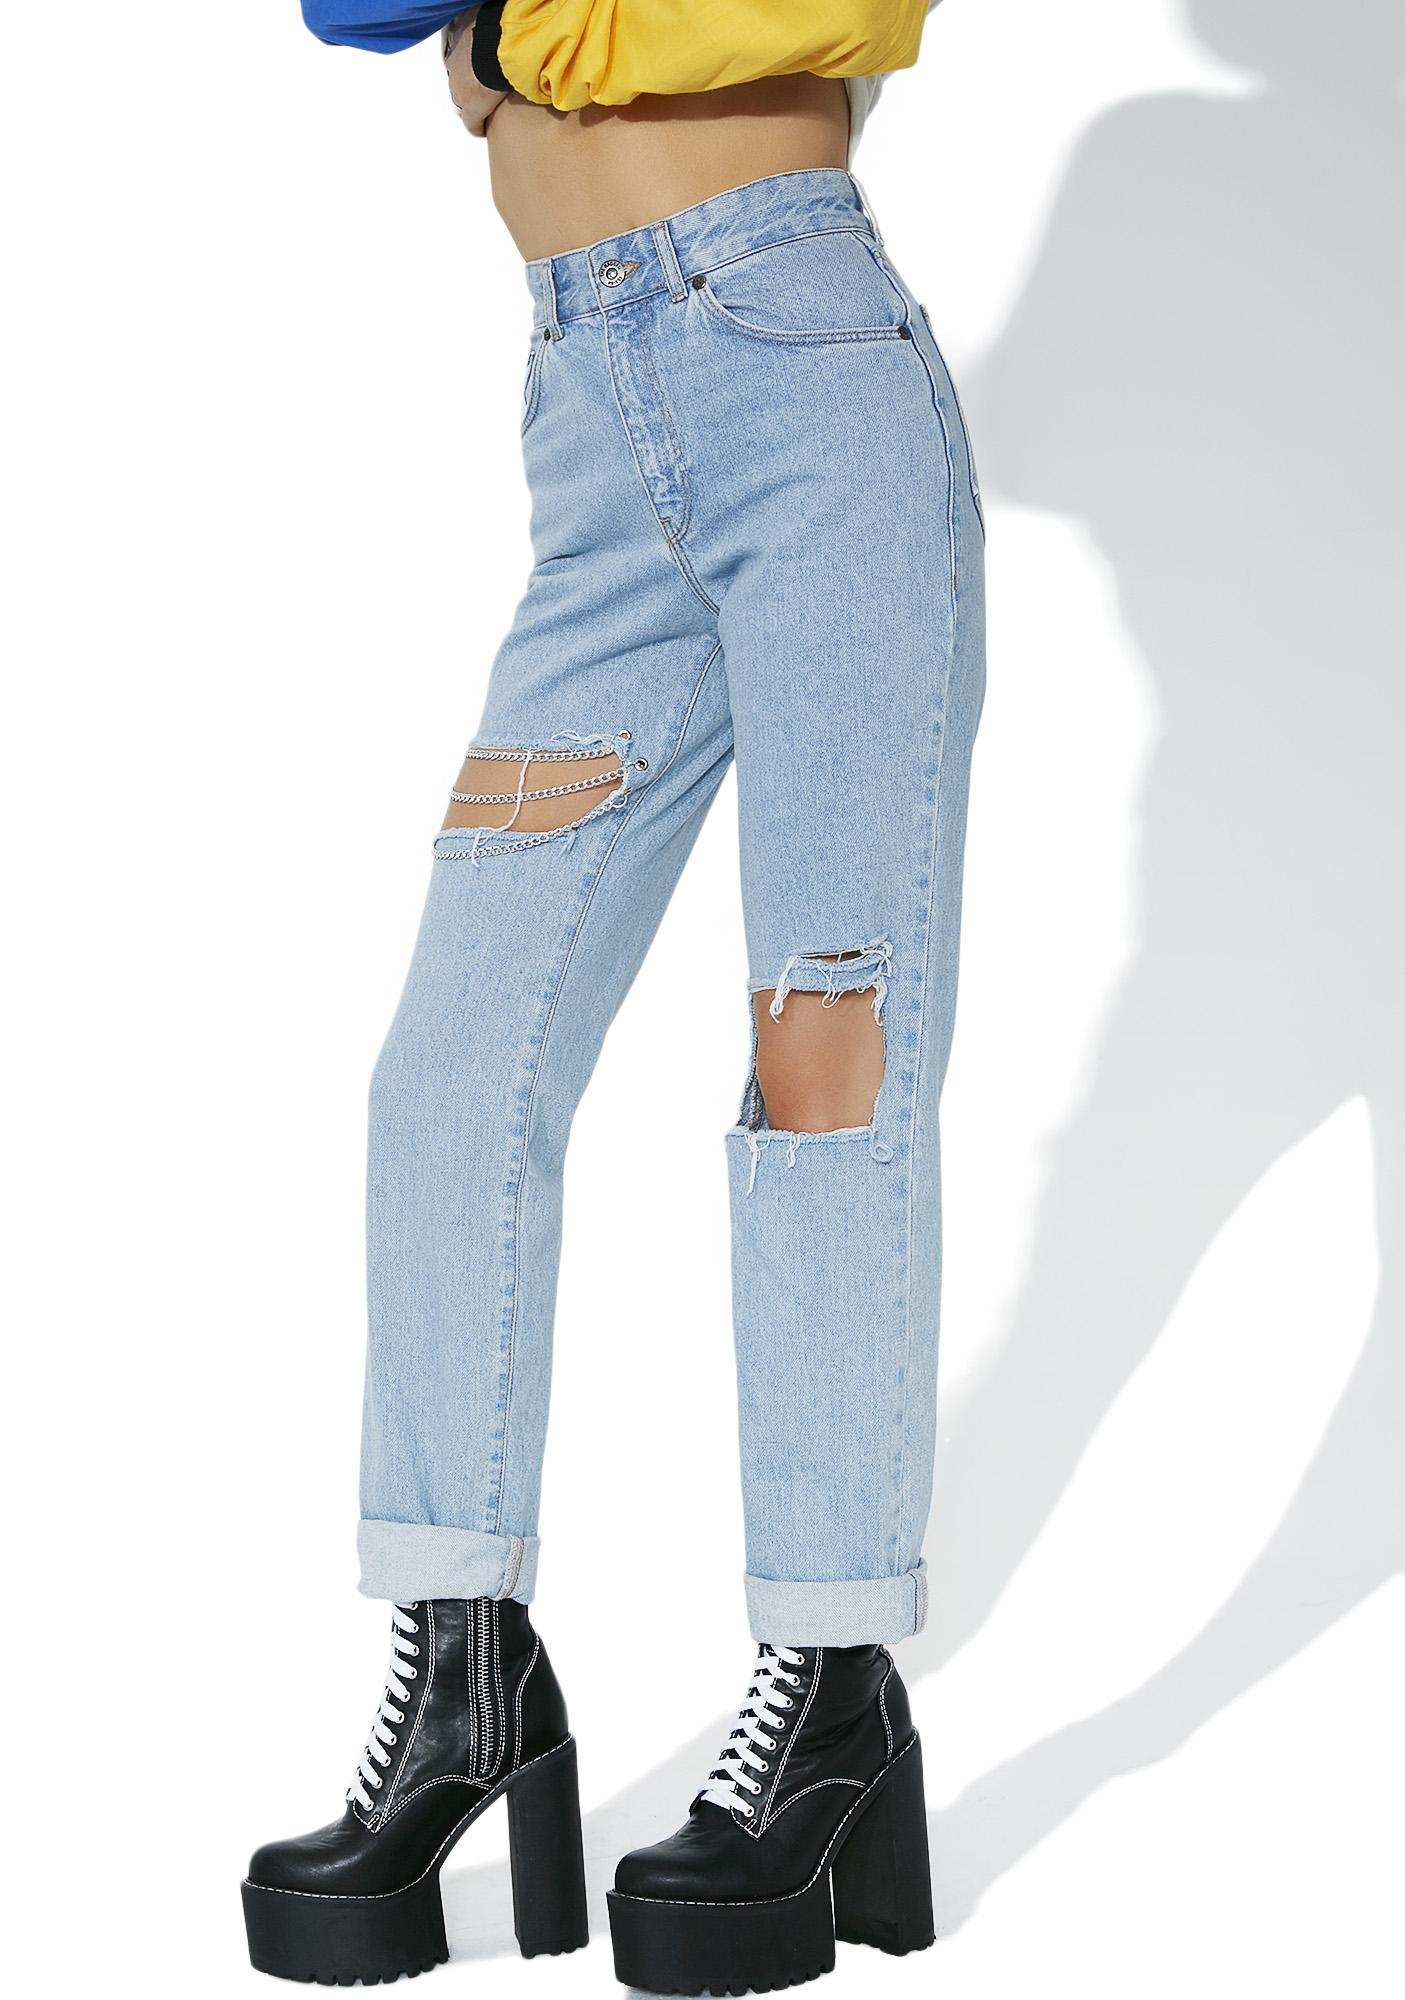 The Ragged Priest Machine Jeans